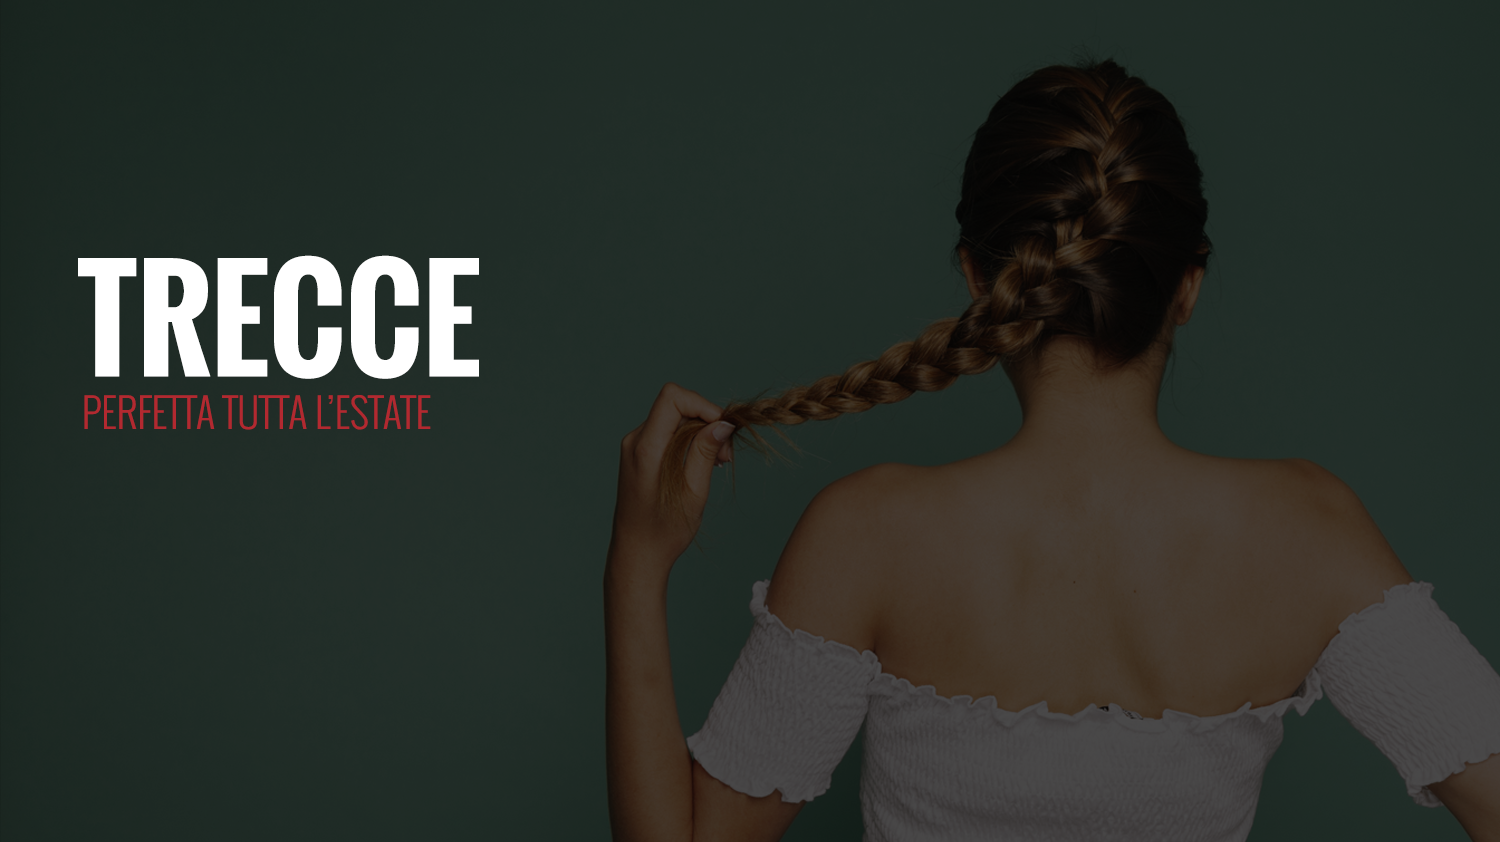 Summer styling: le trecce